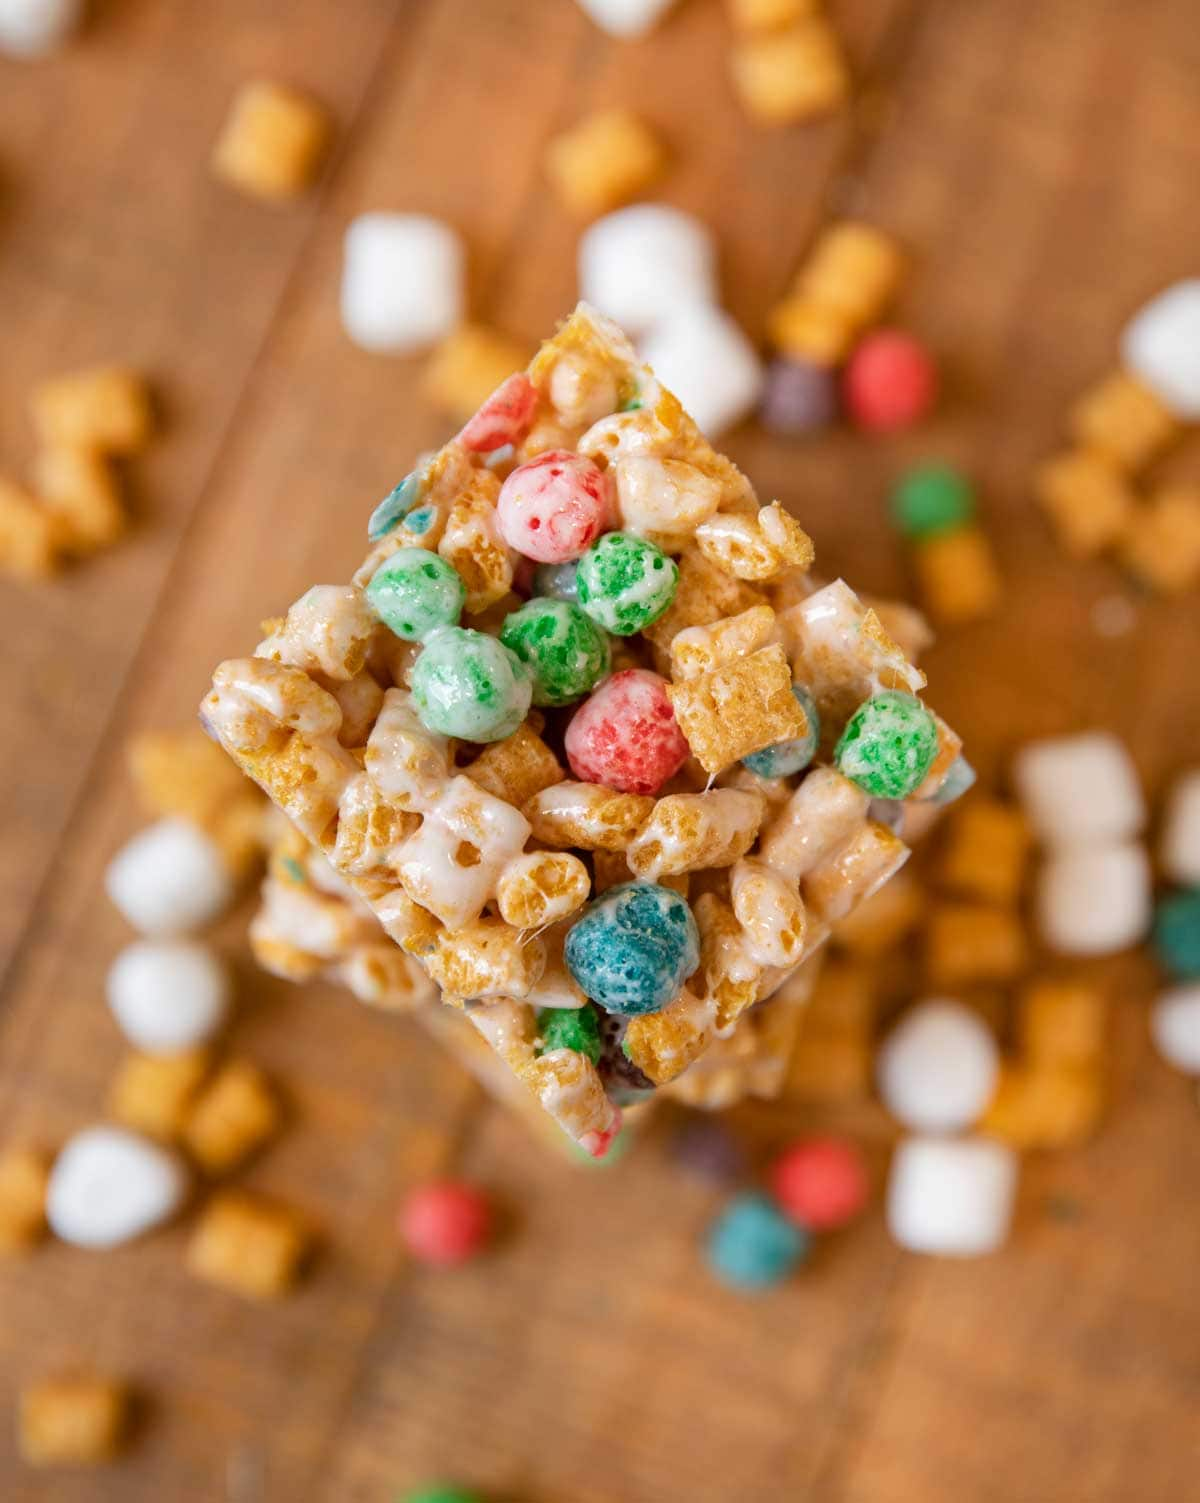 Crunchberry Cereal Marshmallow Bar with cereal and marshmallows next to it